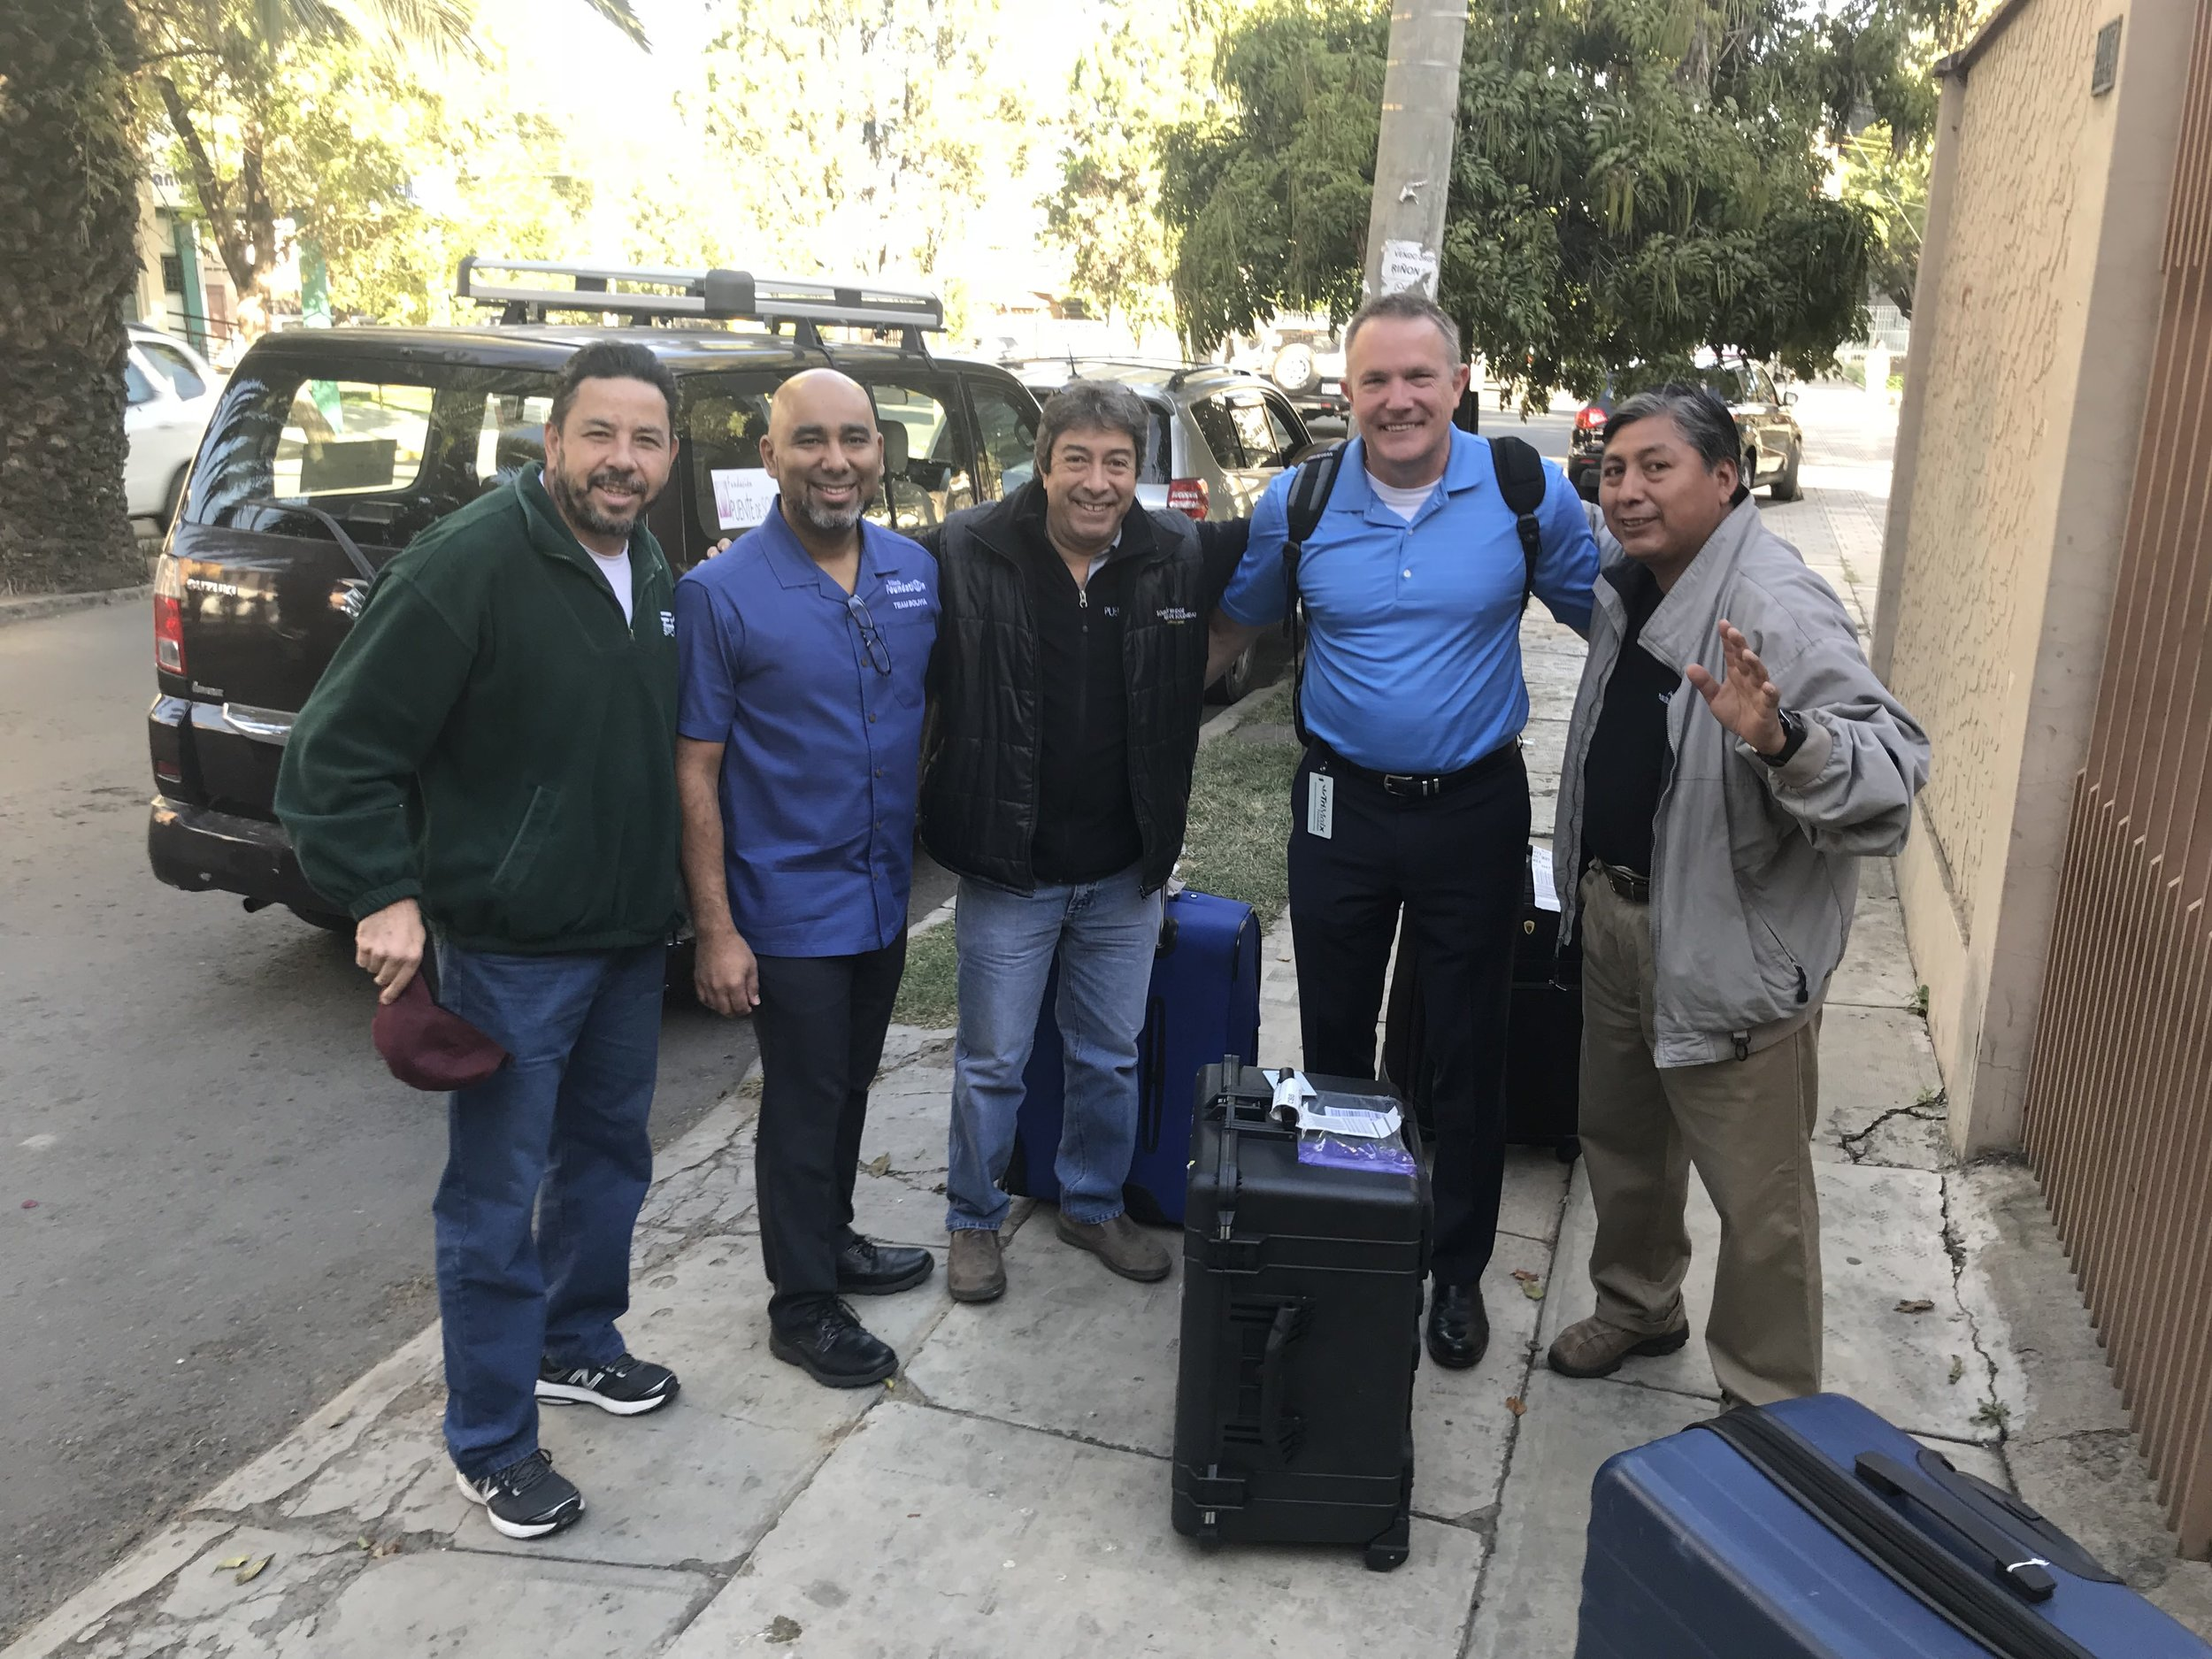 Our missioners (in blue) are greeted by colleagues at the Puente de Solidaridad office.